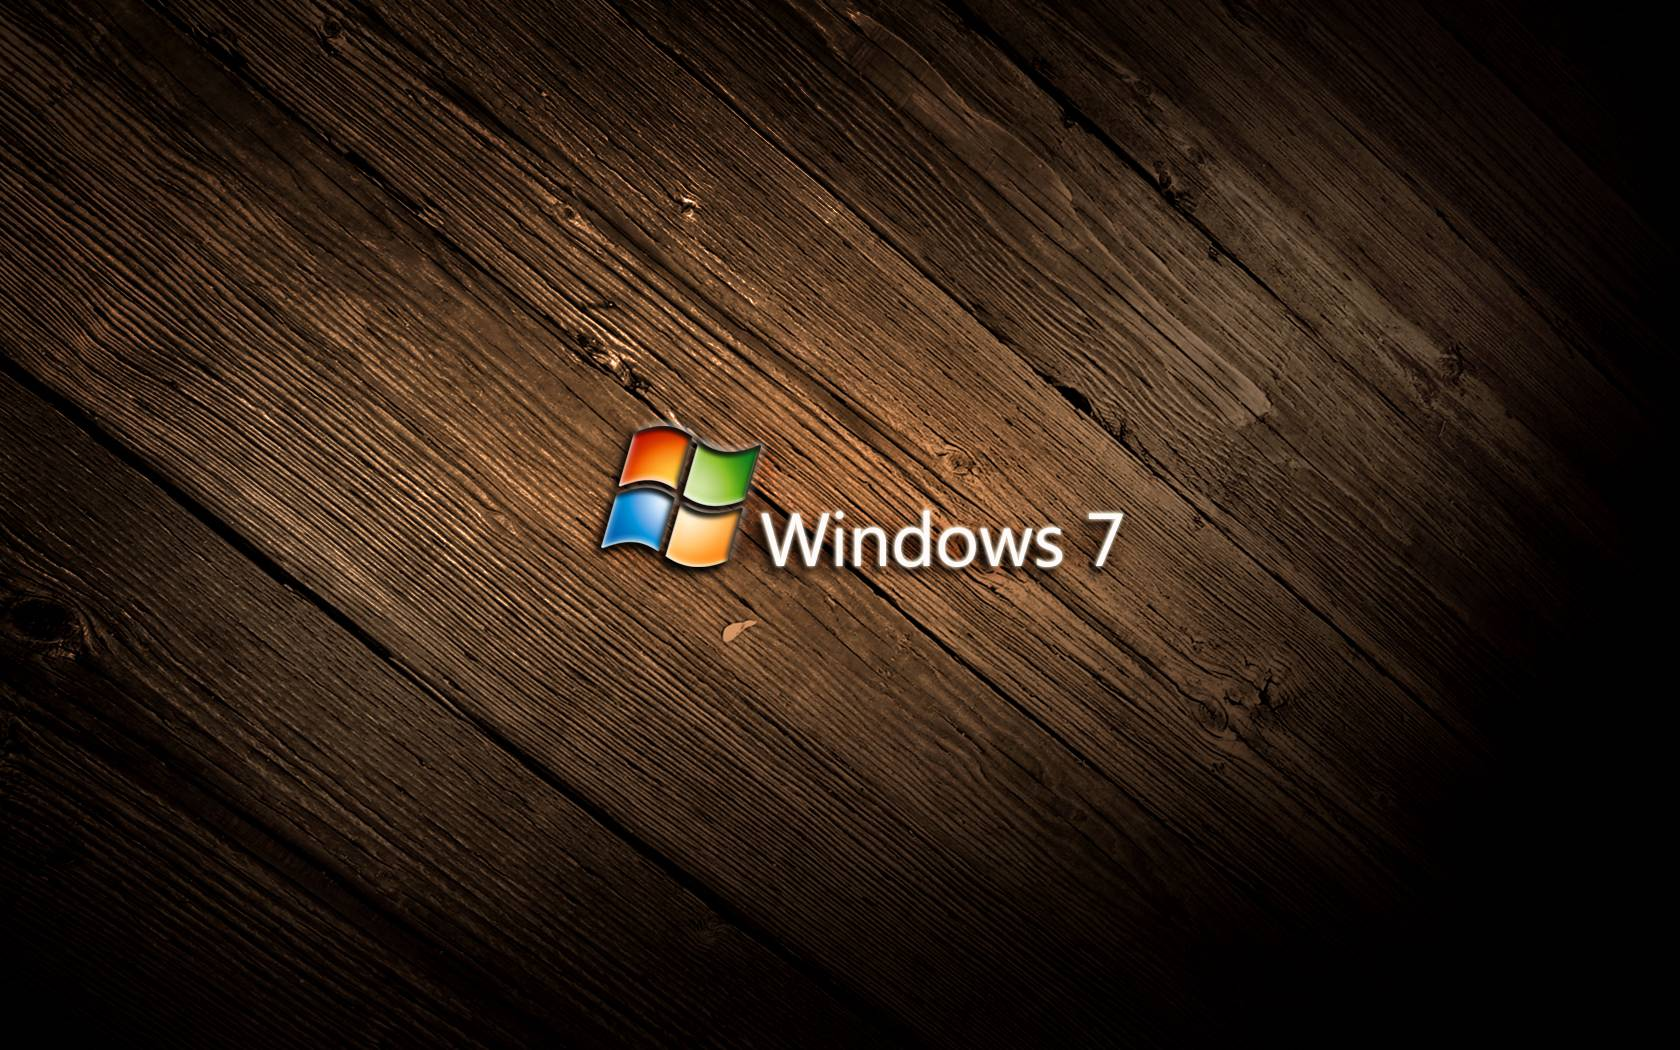 Hd wallpaper windows 7 - Hd Wallpapers For Windows 7